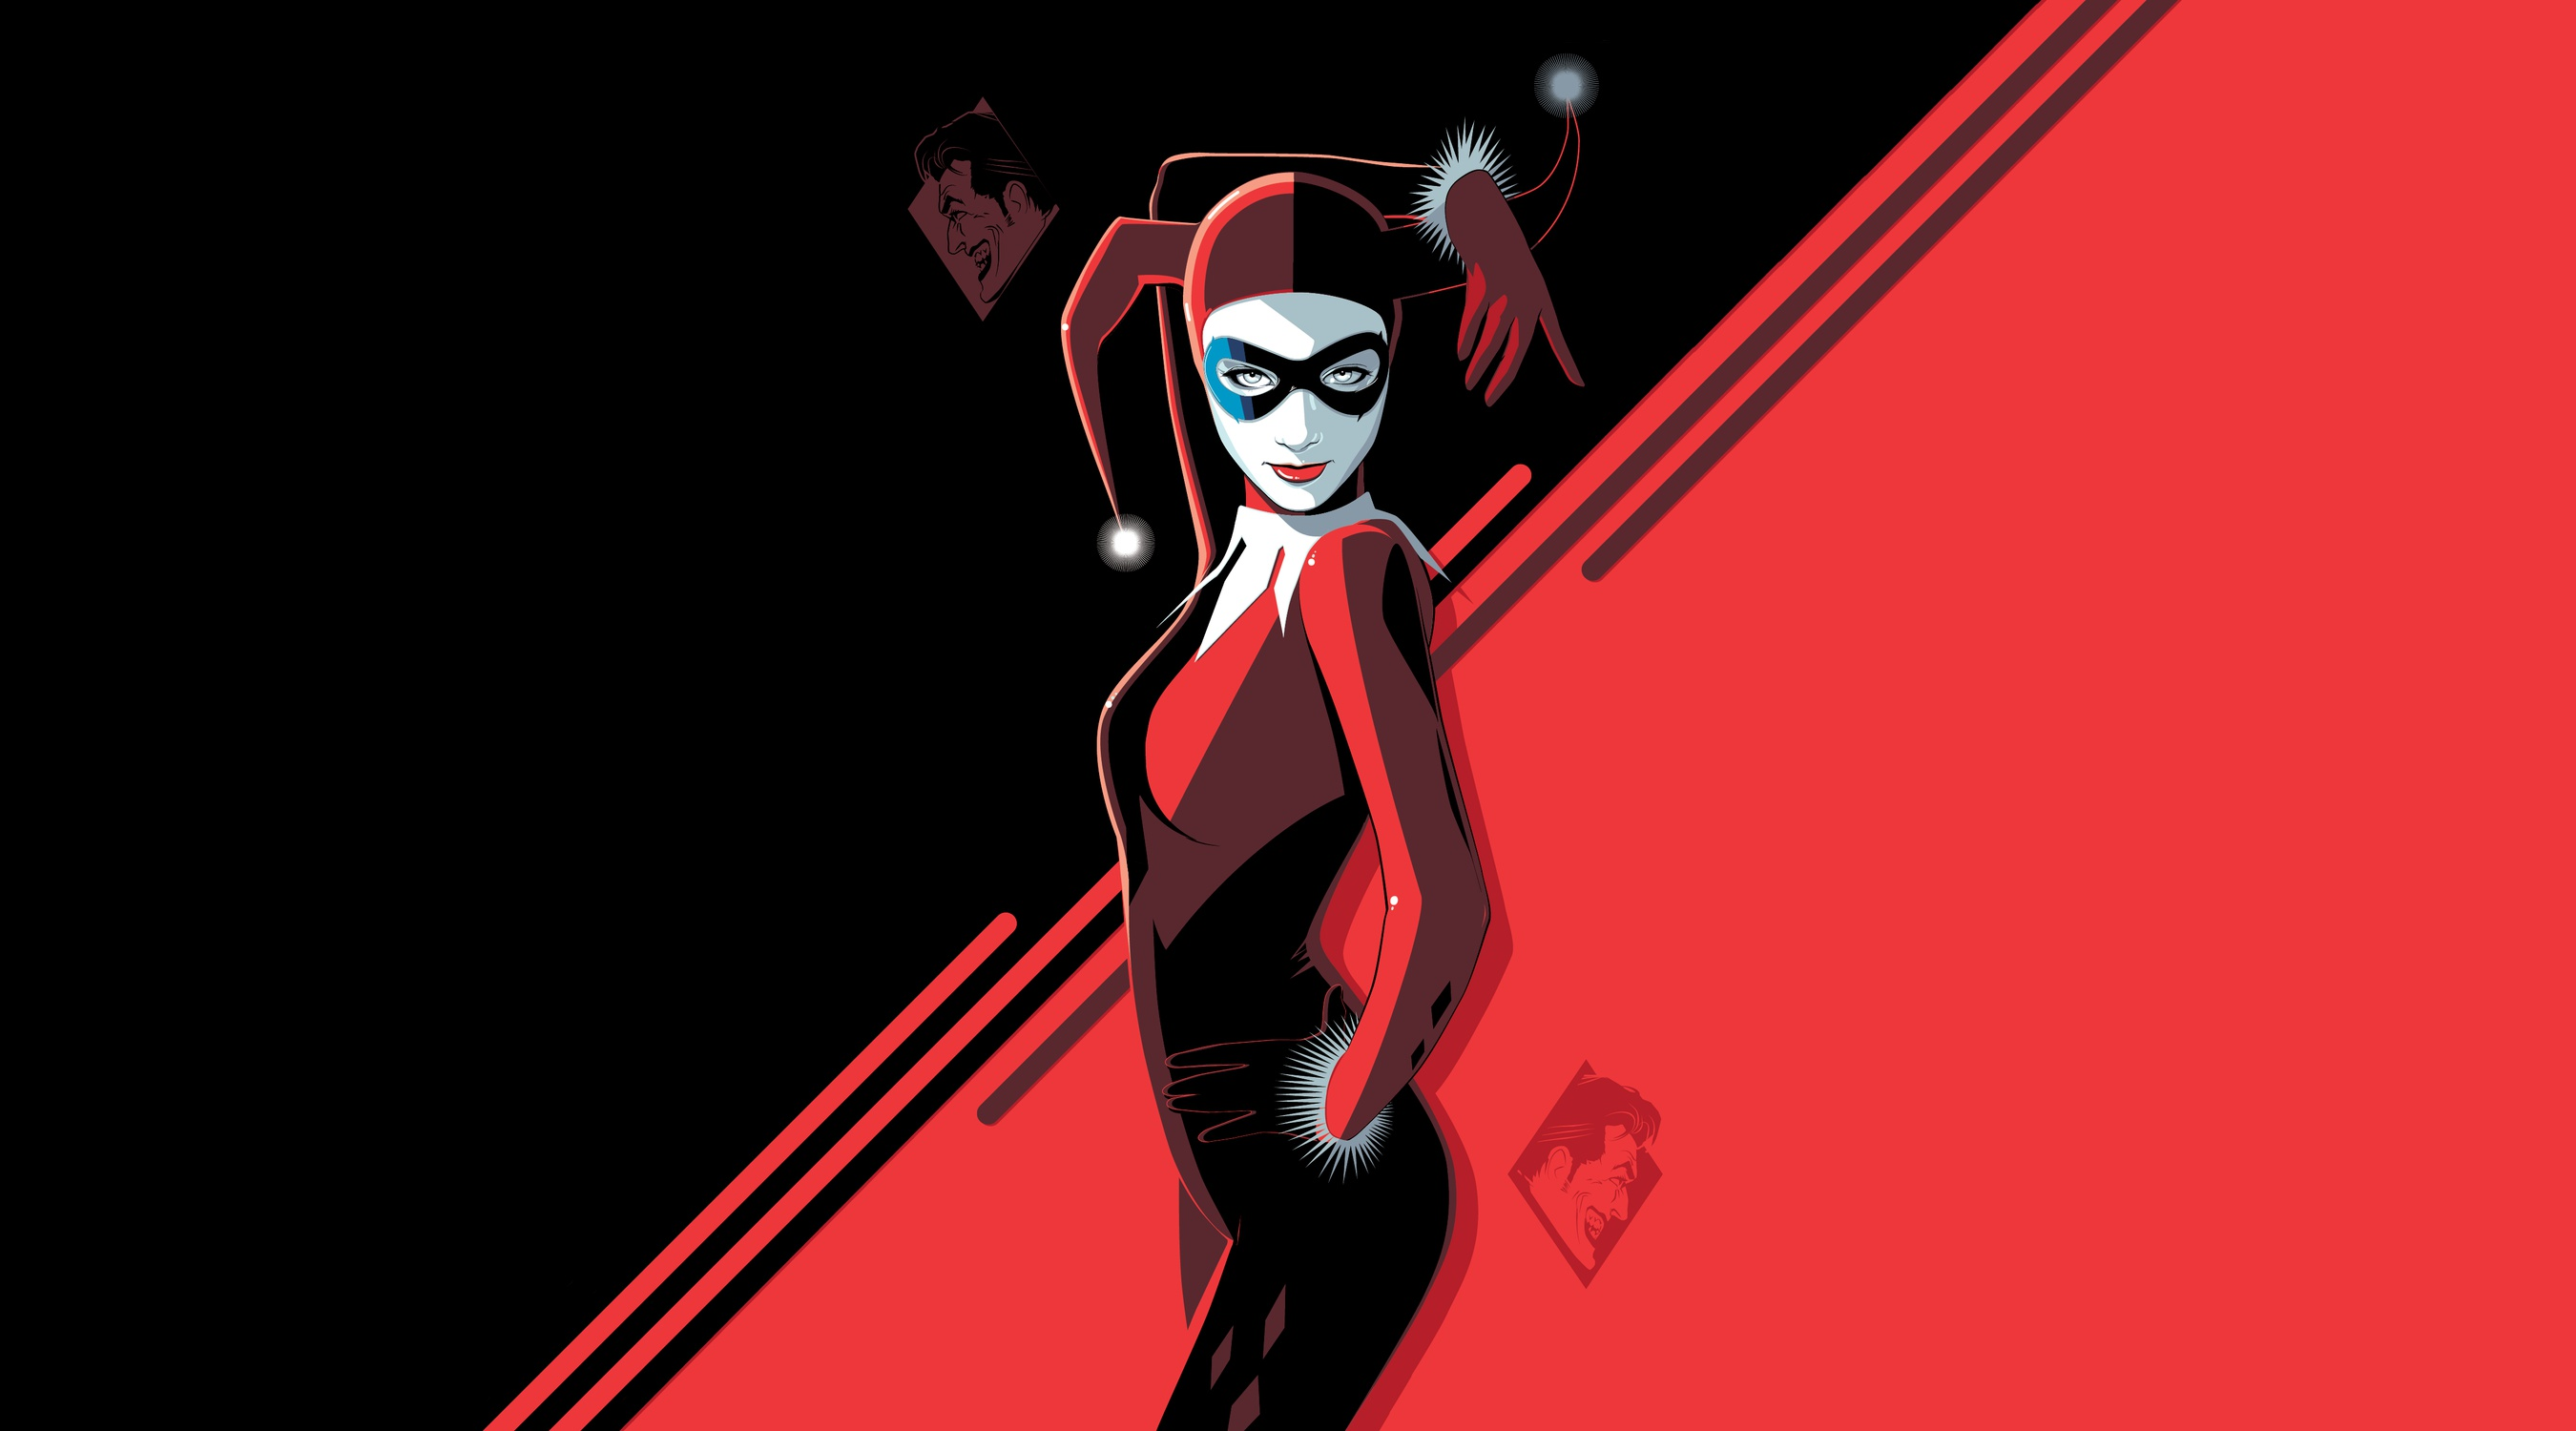 Harley Quinn Comic Digital Art Hd Superheroes 4k Wallpapers Images Backgrounds Photos And Pictures